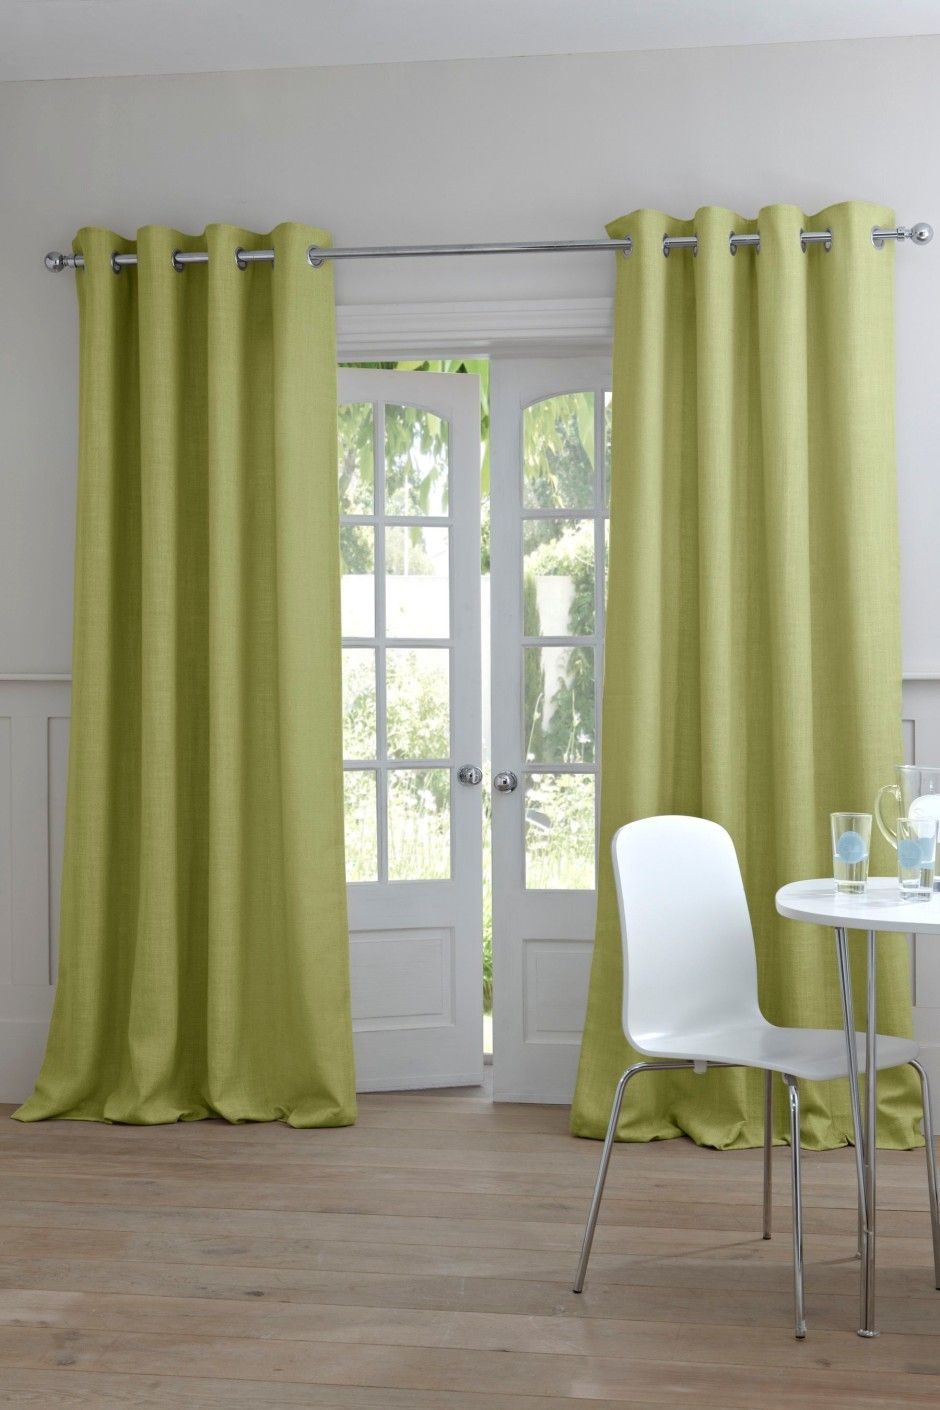 Elegant Green Curtain Design To Give The Freshness Room Elegant Green Curtain In White Room Curtains Living Room Elegant Curtains Elegant Living Room Green living room curtains